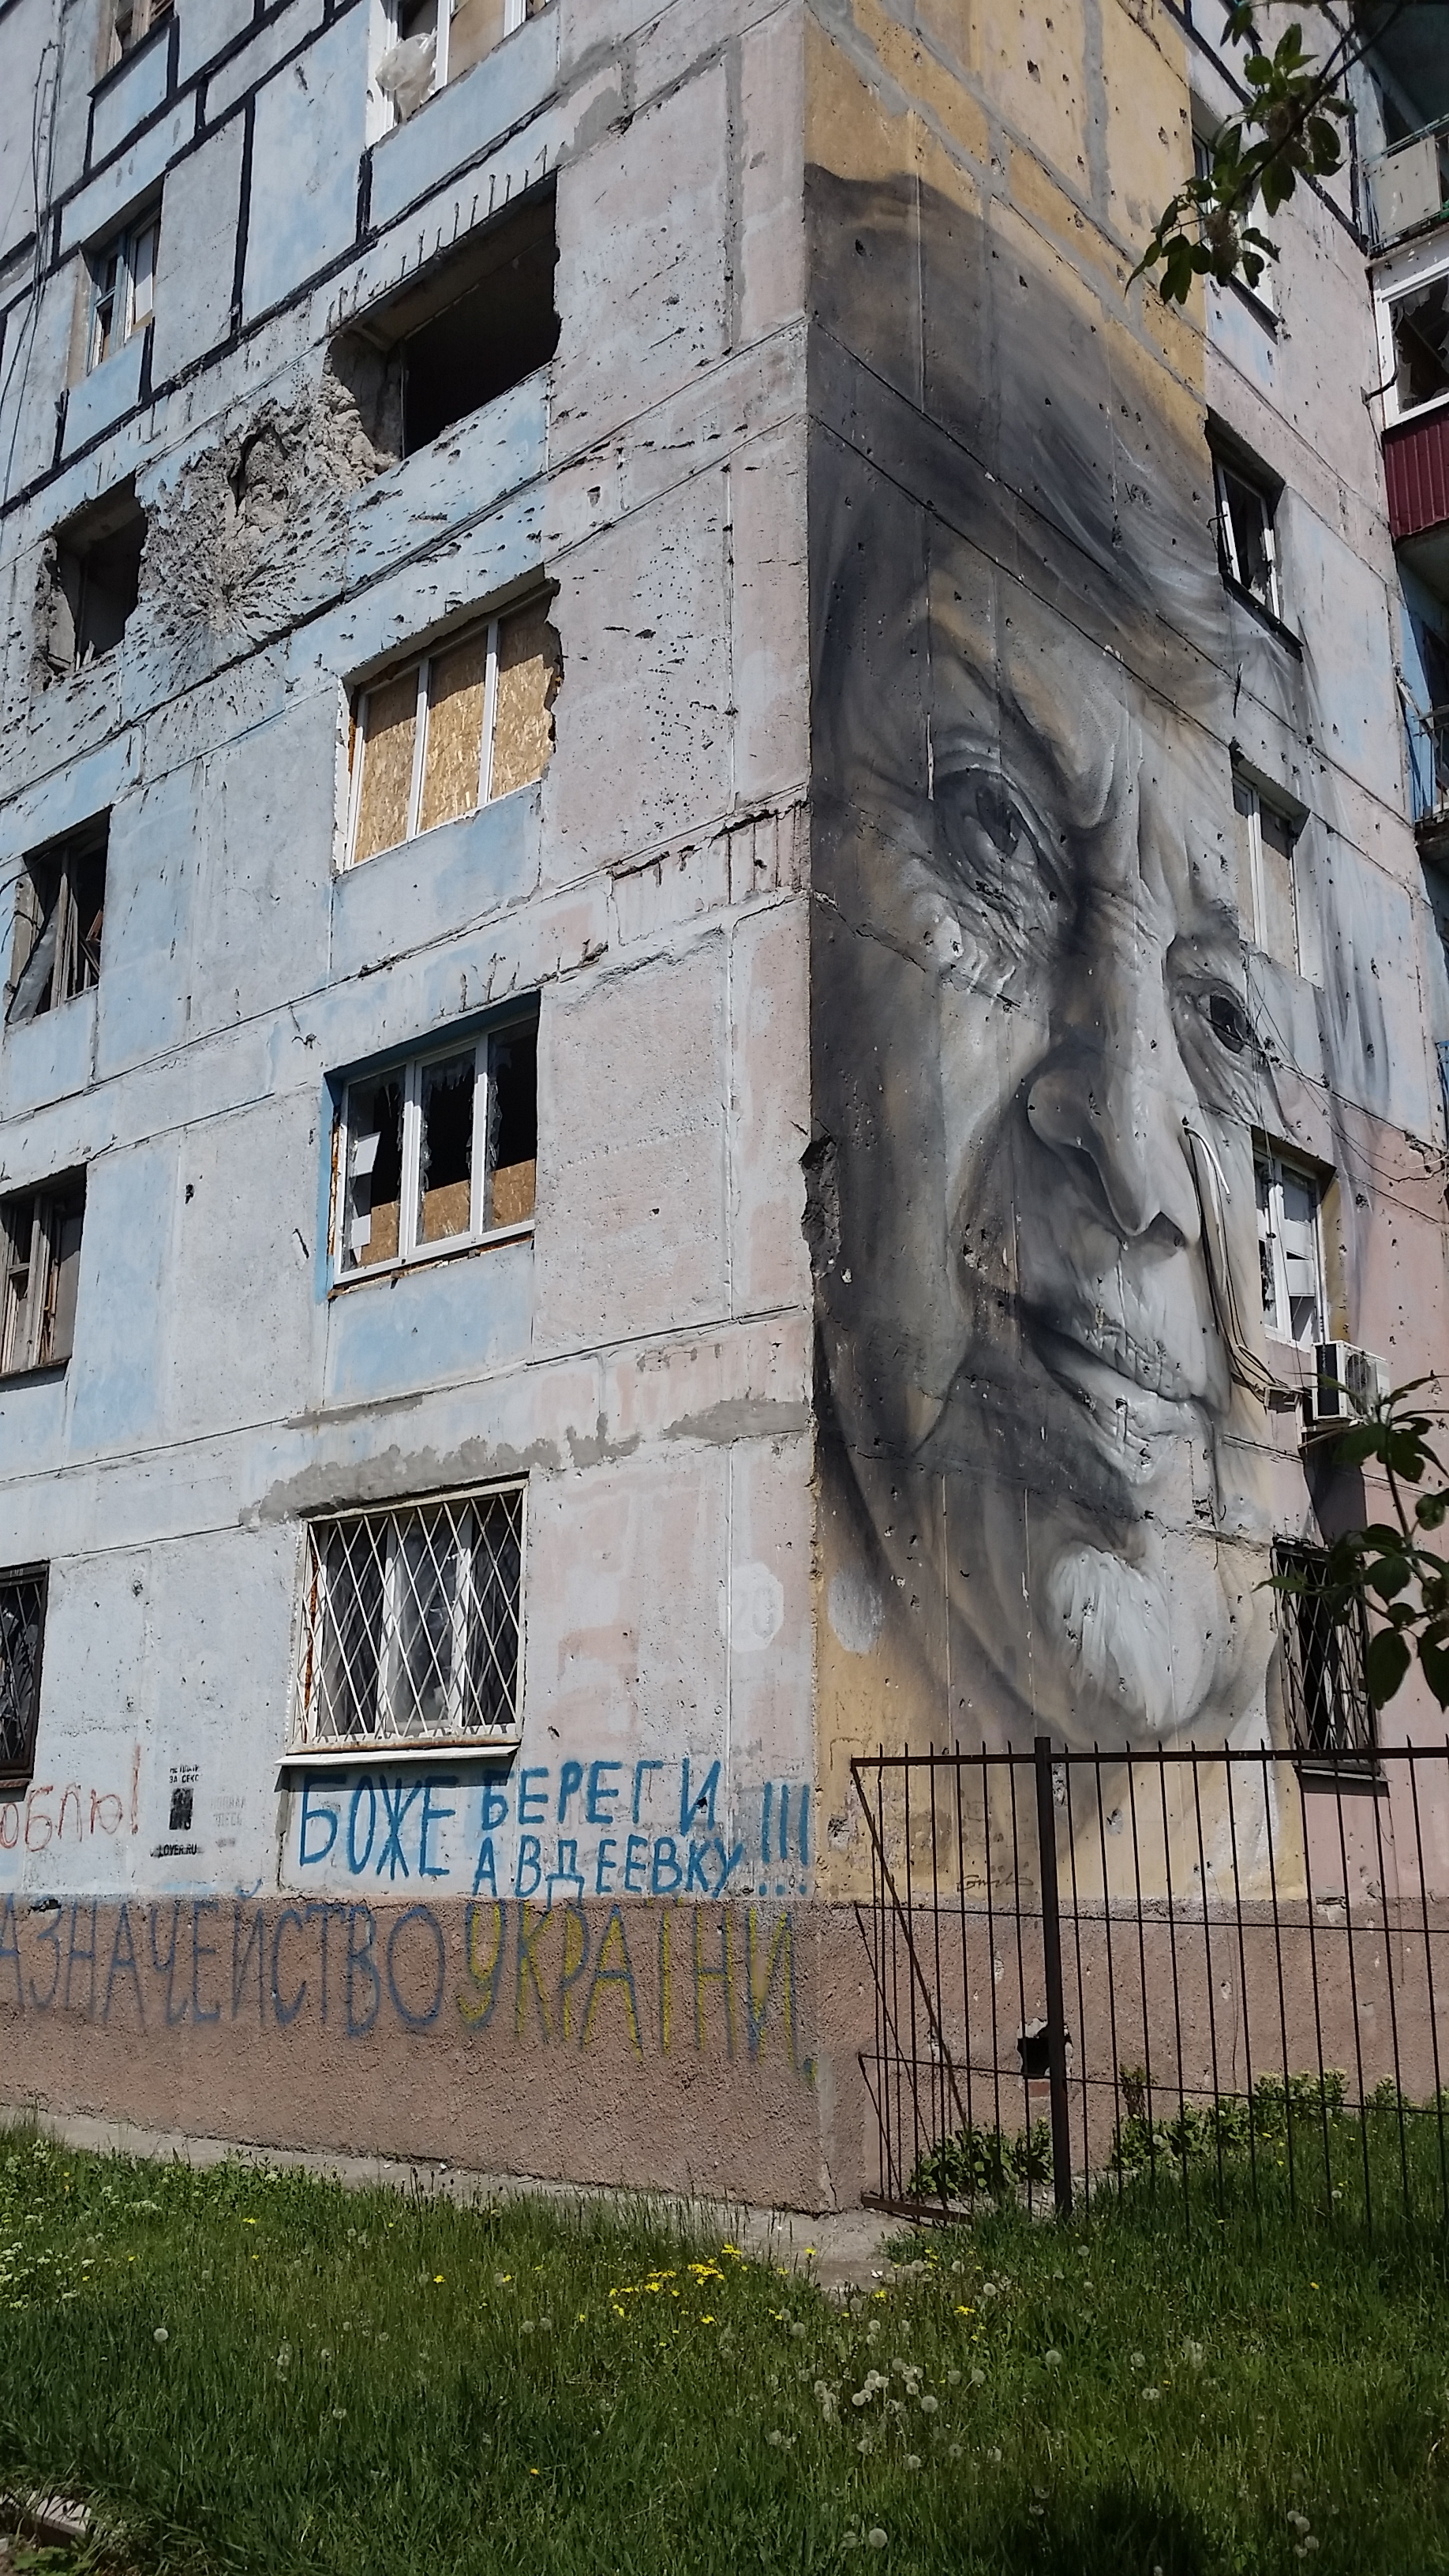 A mural protesting war in Eastern Ukraine by Guido van Helten.